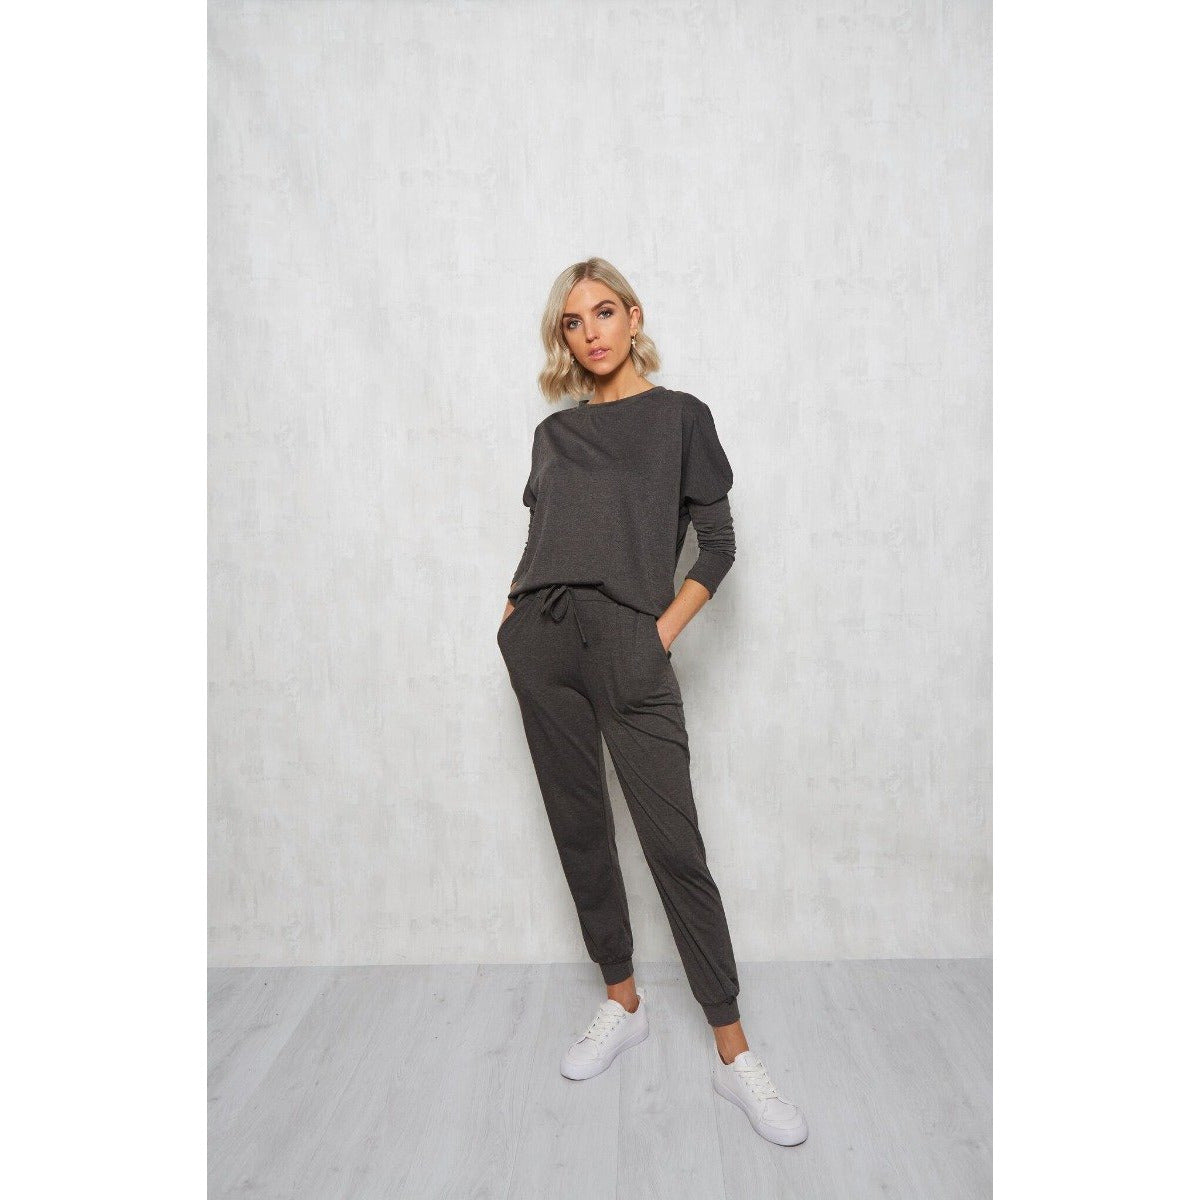 FL Basic - Rey long sleeve T Shirt - Charcoal